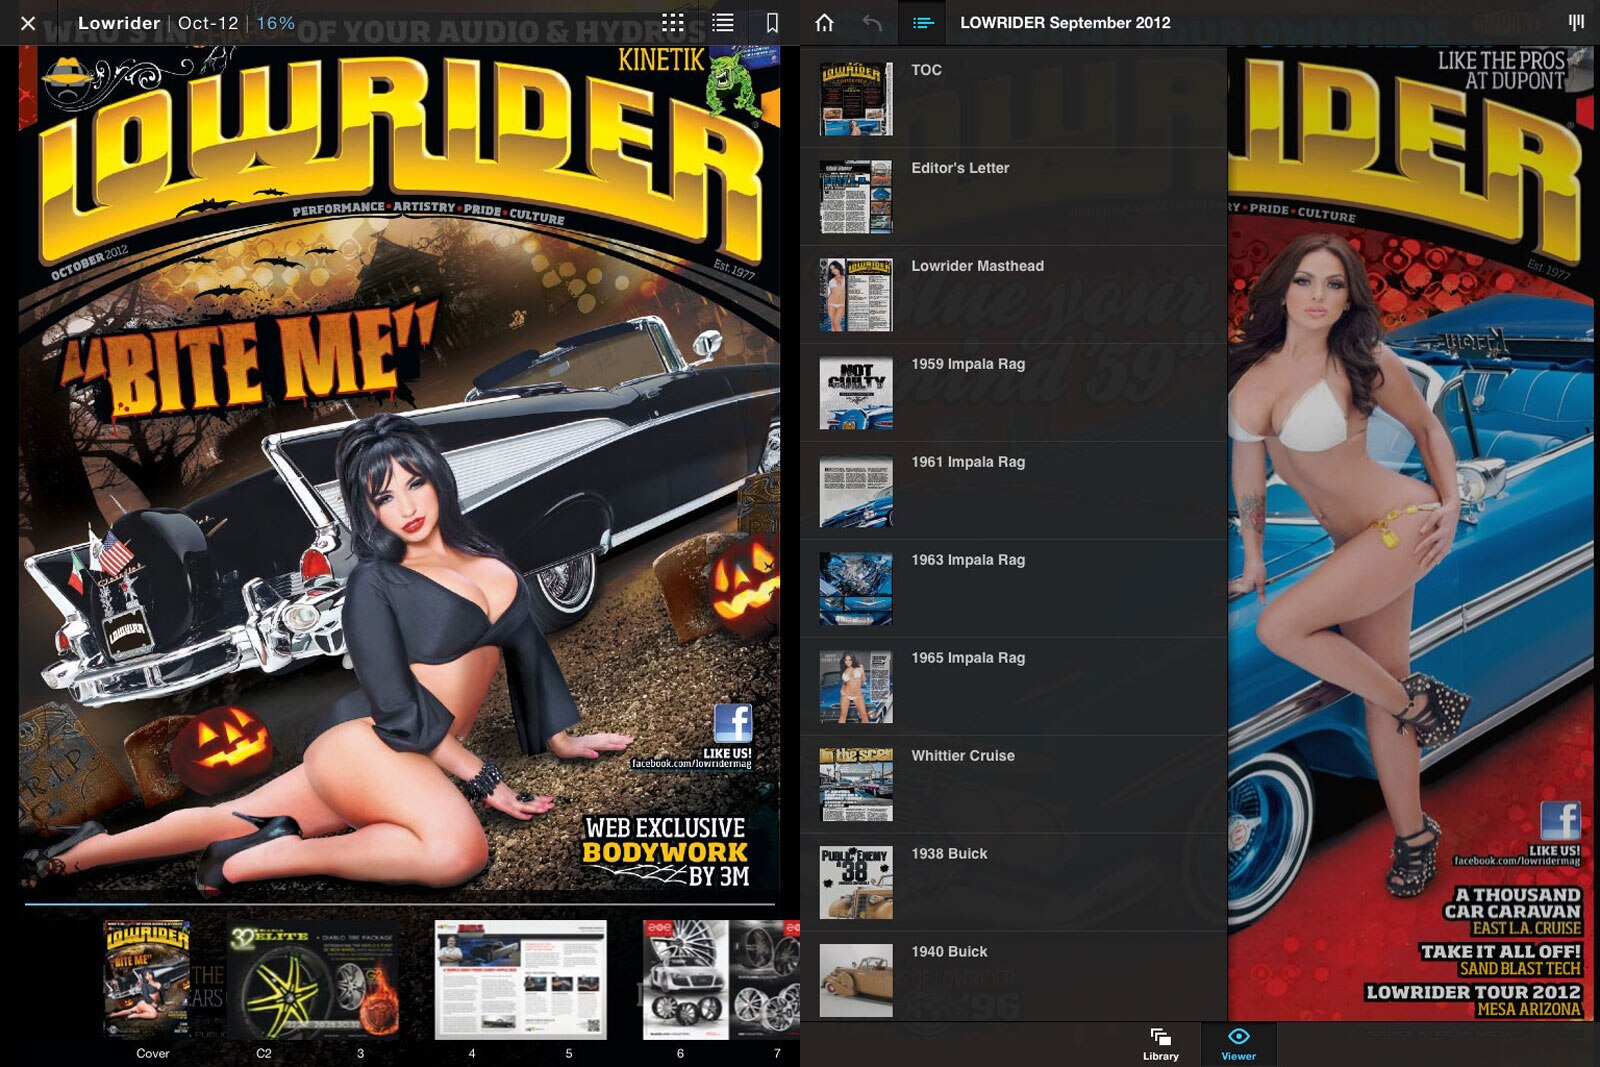 1208-lrmp-12-o-lowrider-magazine-iPad-zinio-apps-screenshots1